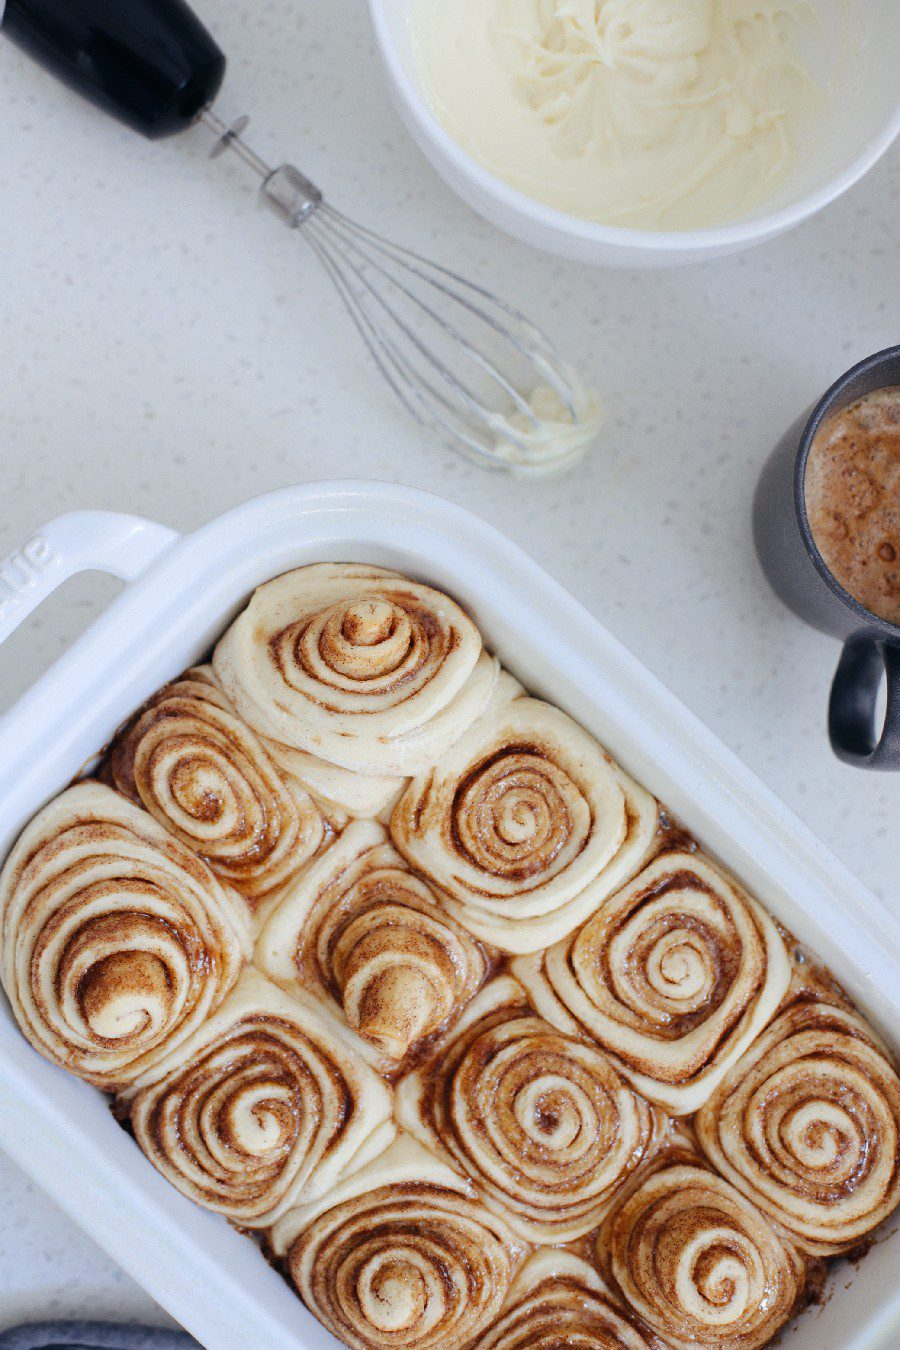 Easy bread machine cinnamon rolls dough. The best gooey sticky buns and clone of a Cinnabon roll icing! NO waiting overnight. Click for the recipe and how to video for fluffy cinnamon rolls homemade with a bread maker machine! Use all purpose flour or make them gluten free. Recipe from top Florida lifestyle blogger Tabitha Blue of Fresh Mommy Blog.